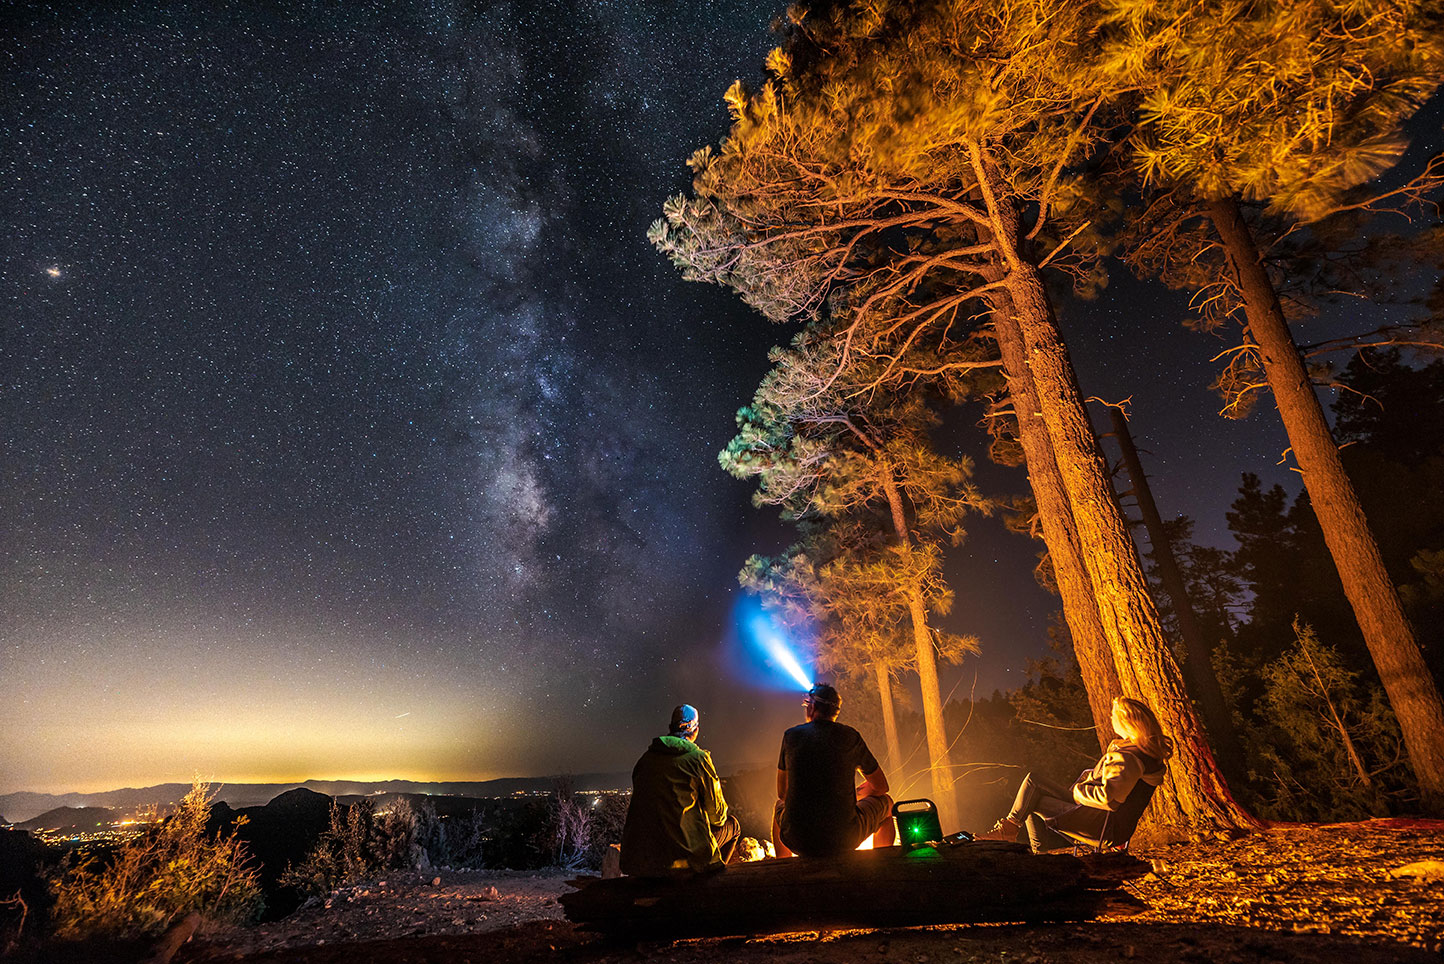 Camping, Milky Way,  Stars, Lux Pro Flashlights, Night Photography, Lifestyle, Adventure Photographer, Daniel Britton